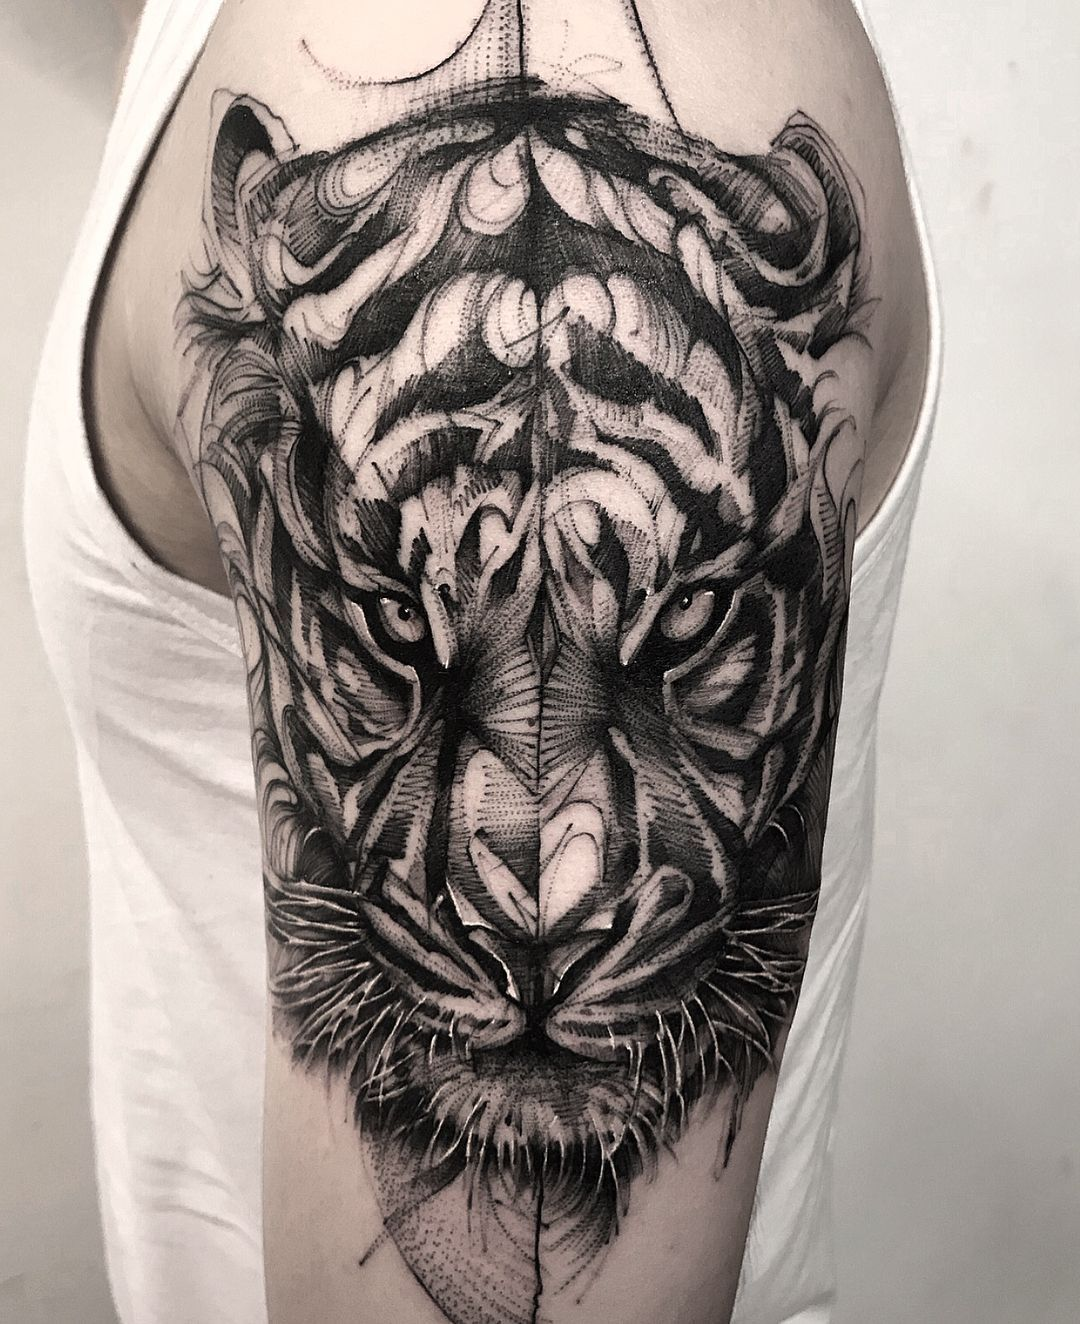 Best 25 Badass Tattoos Ideas On Pinterest: Cool Blackwork Tiger Tattoo By @bk_tattooer #AnimalTattoos